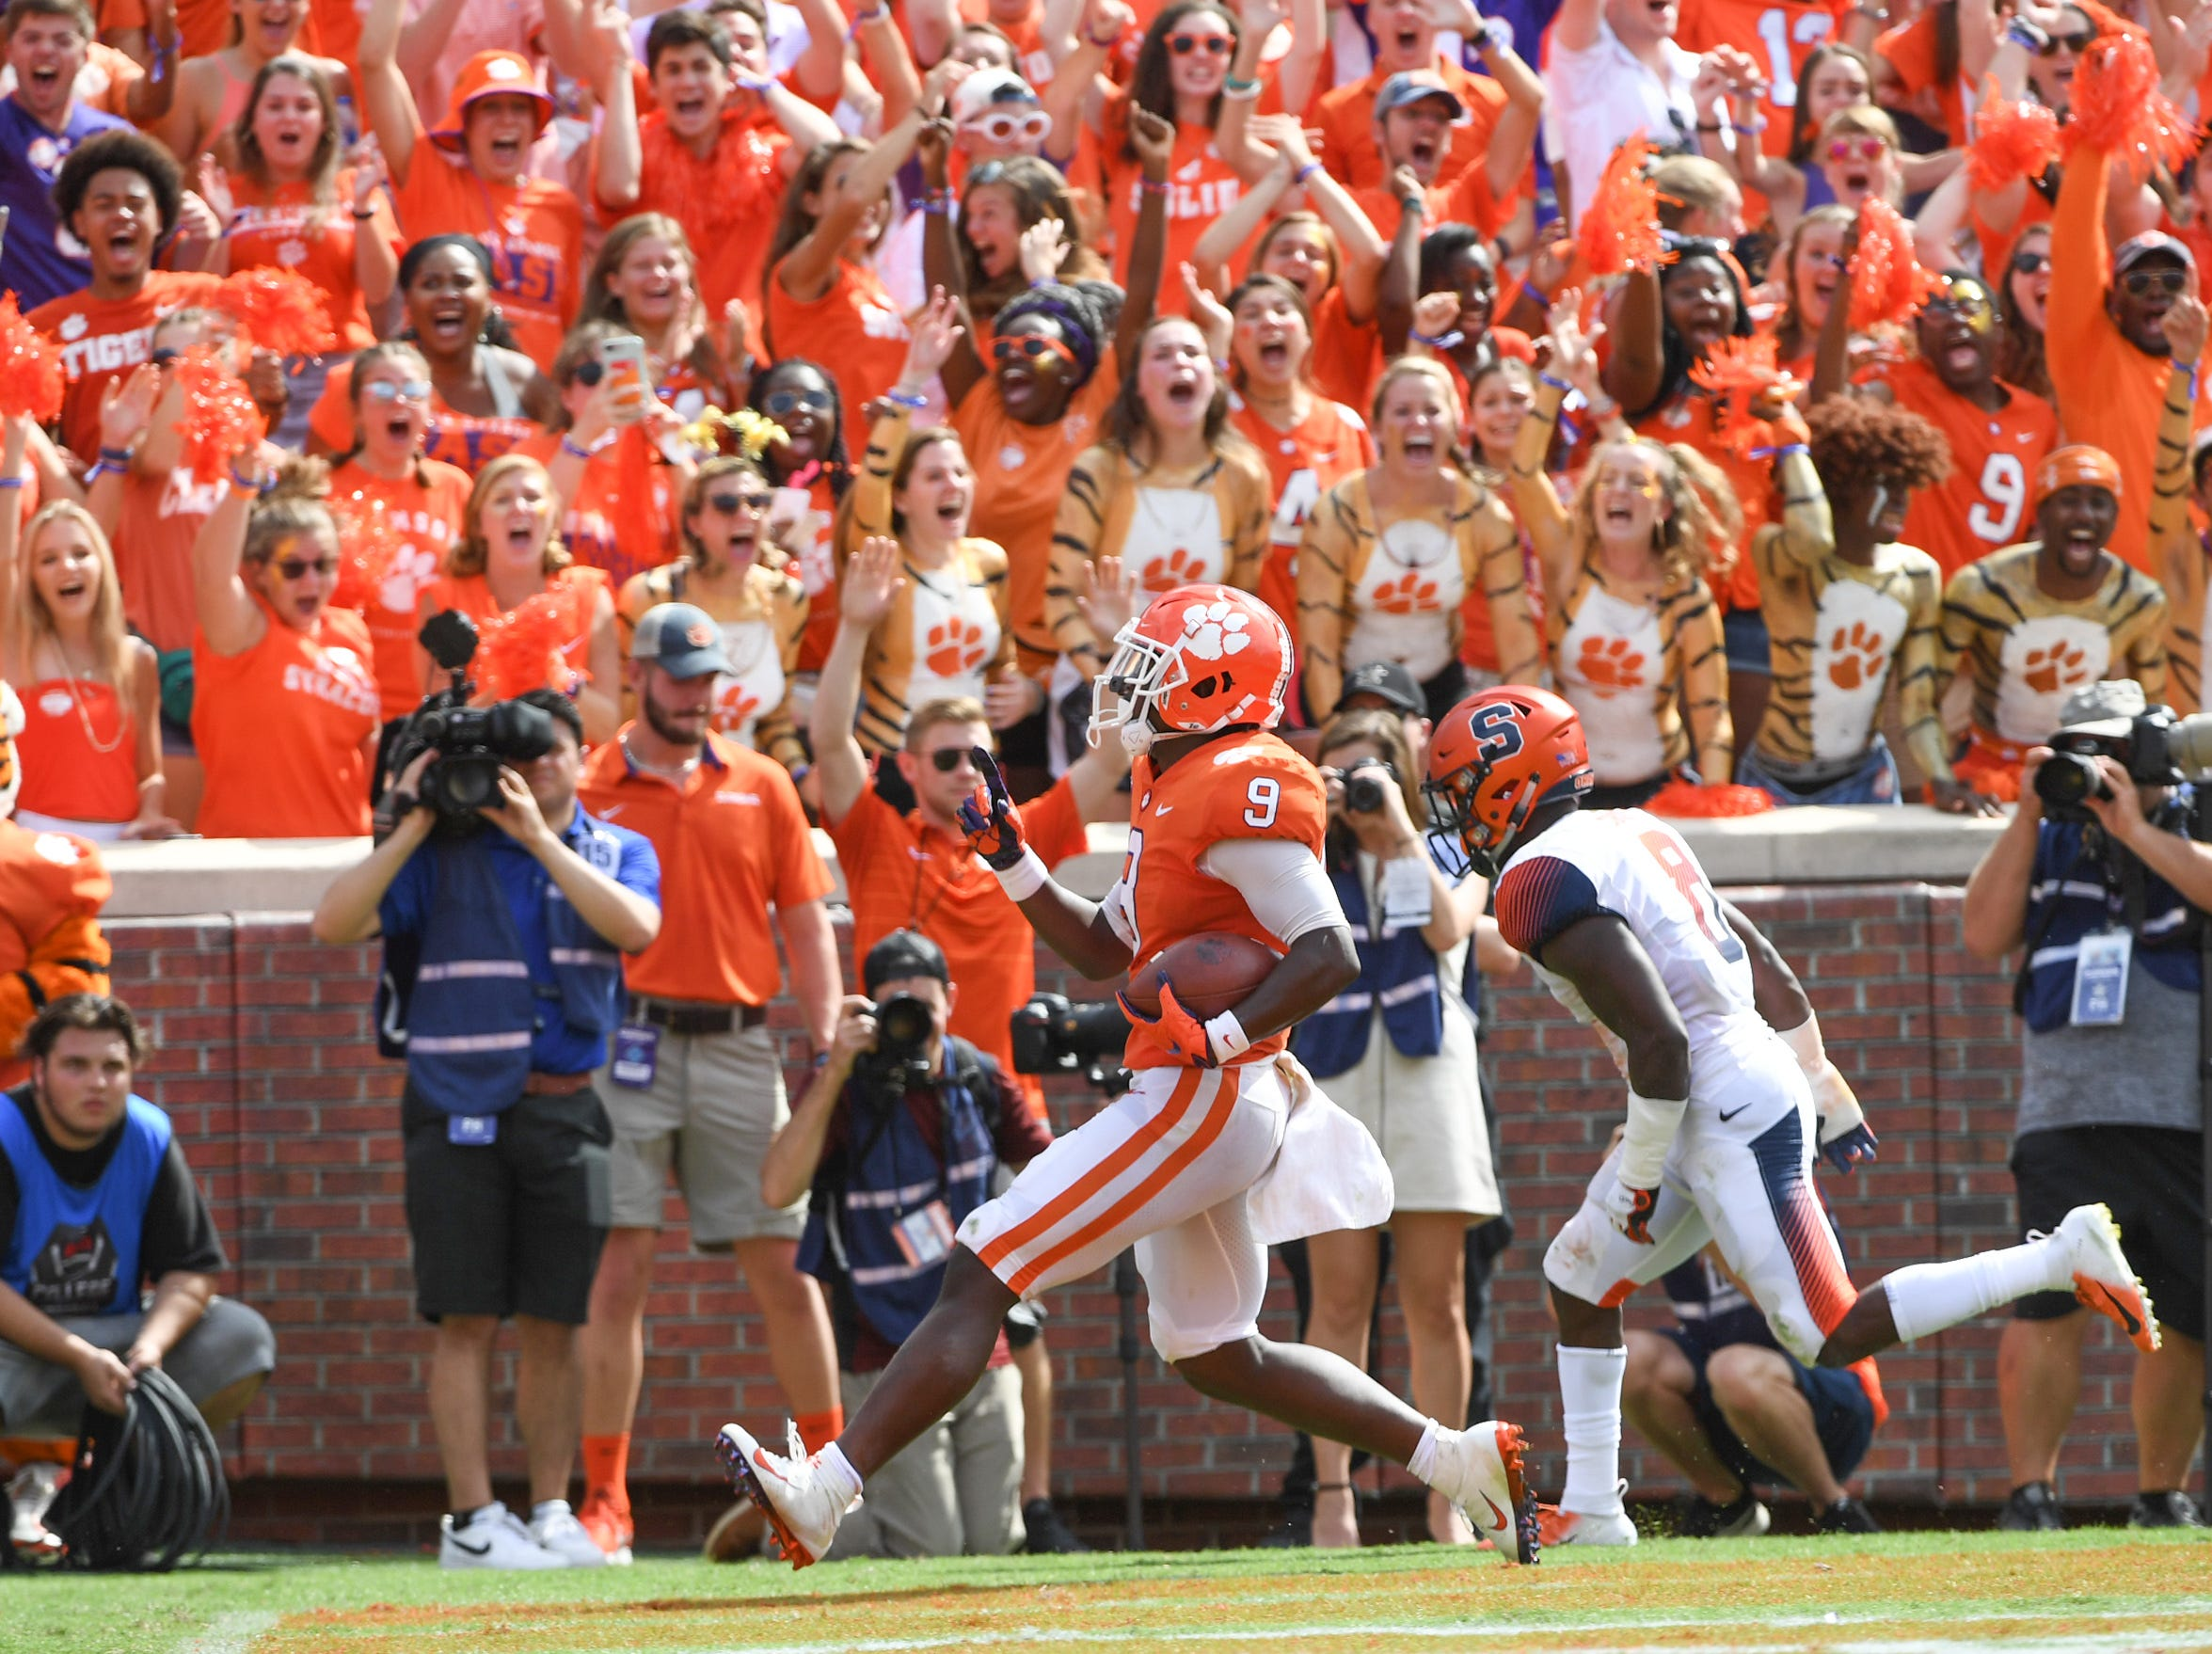 Clemson running back Travis Etienne (9) scores near Syracuse defensive back Antwan Cordy(8) during the fourth quarter in Memorial Stadium on Saturday, September 29, 2018.